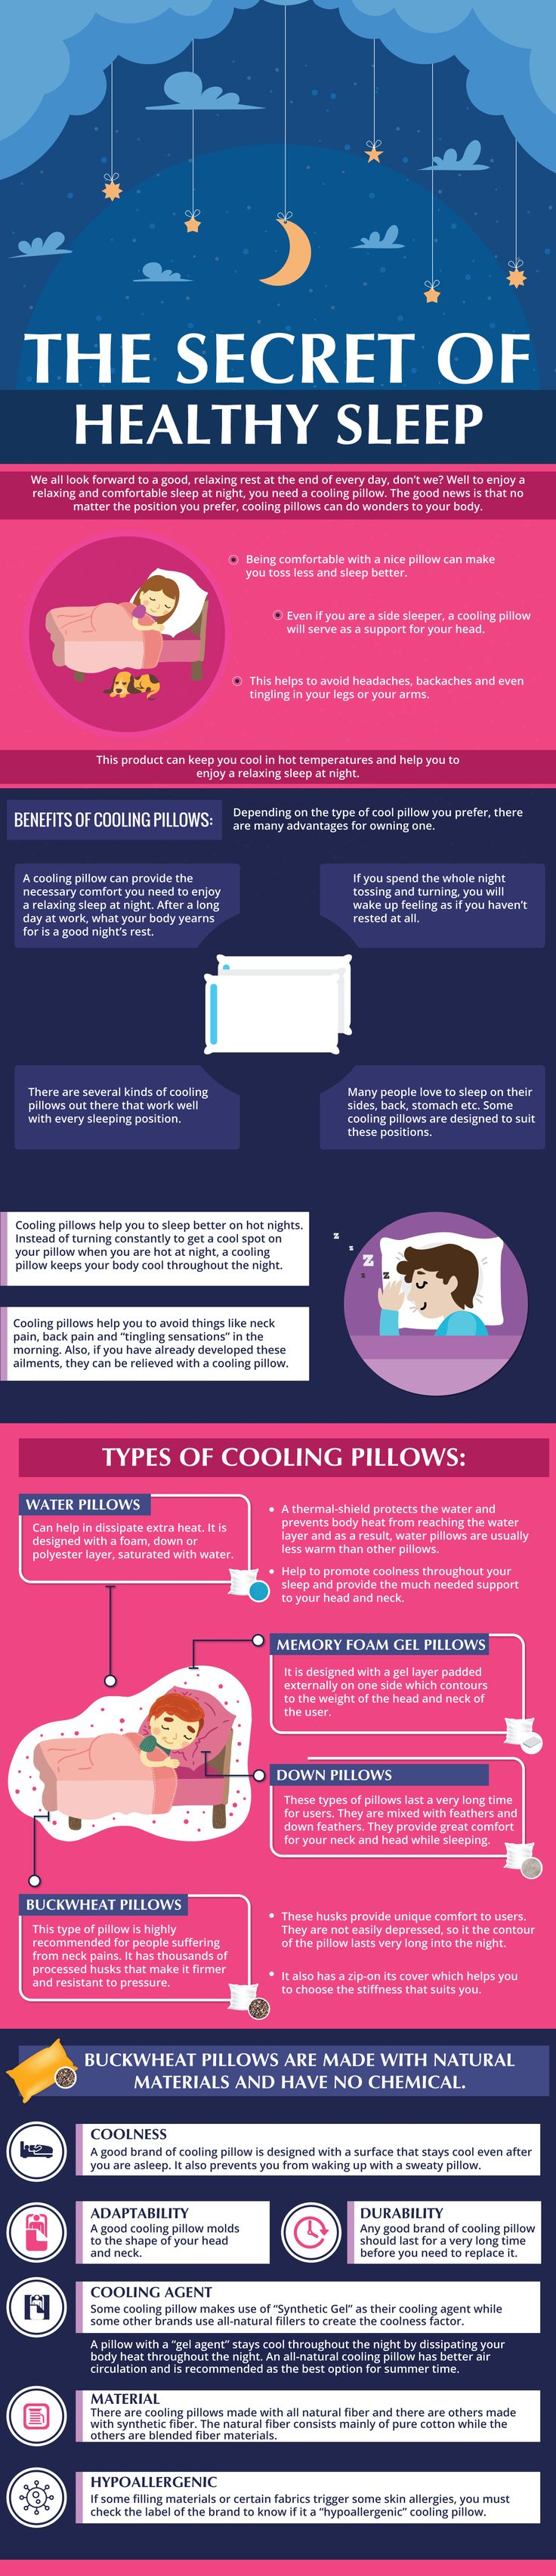 We all look forward to a good, relaxing rest at the end of every day, don't we? Well to enjoy a relaxing and comfortable sleep at night, you need a cooling pillow. Many people have different sleeping positions which work for them. The good news is that no matter the position you prefer, cooling pillows can do wonders to your body.